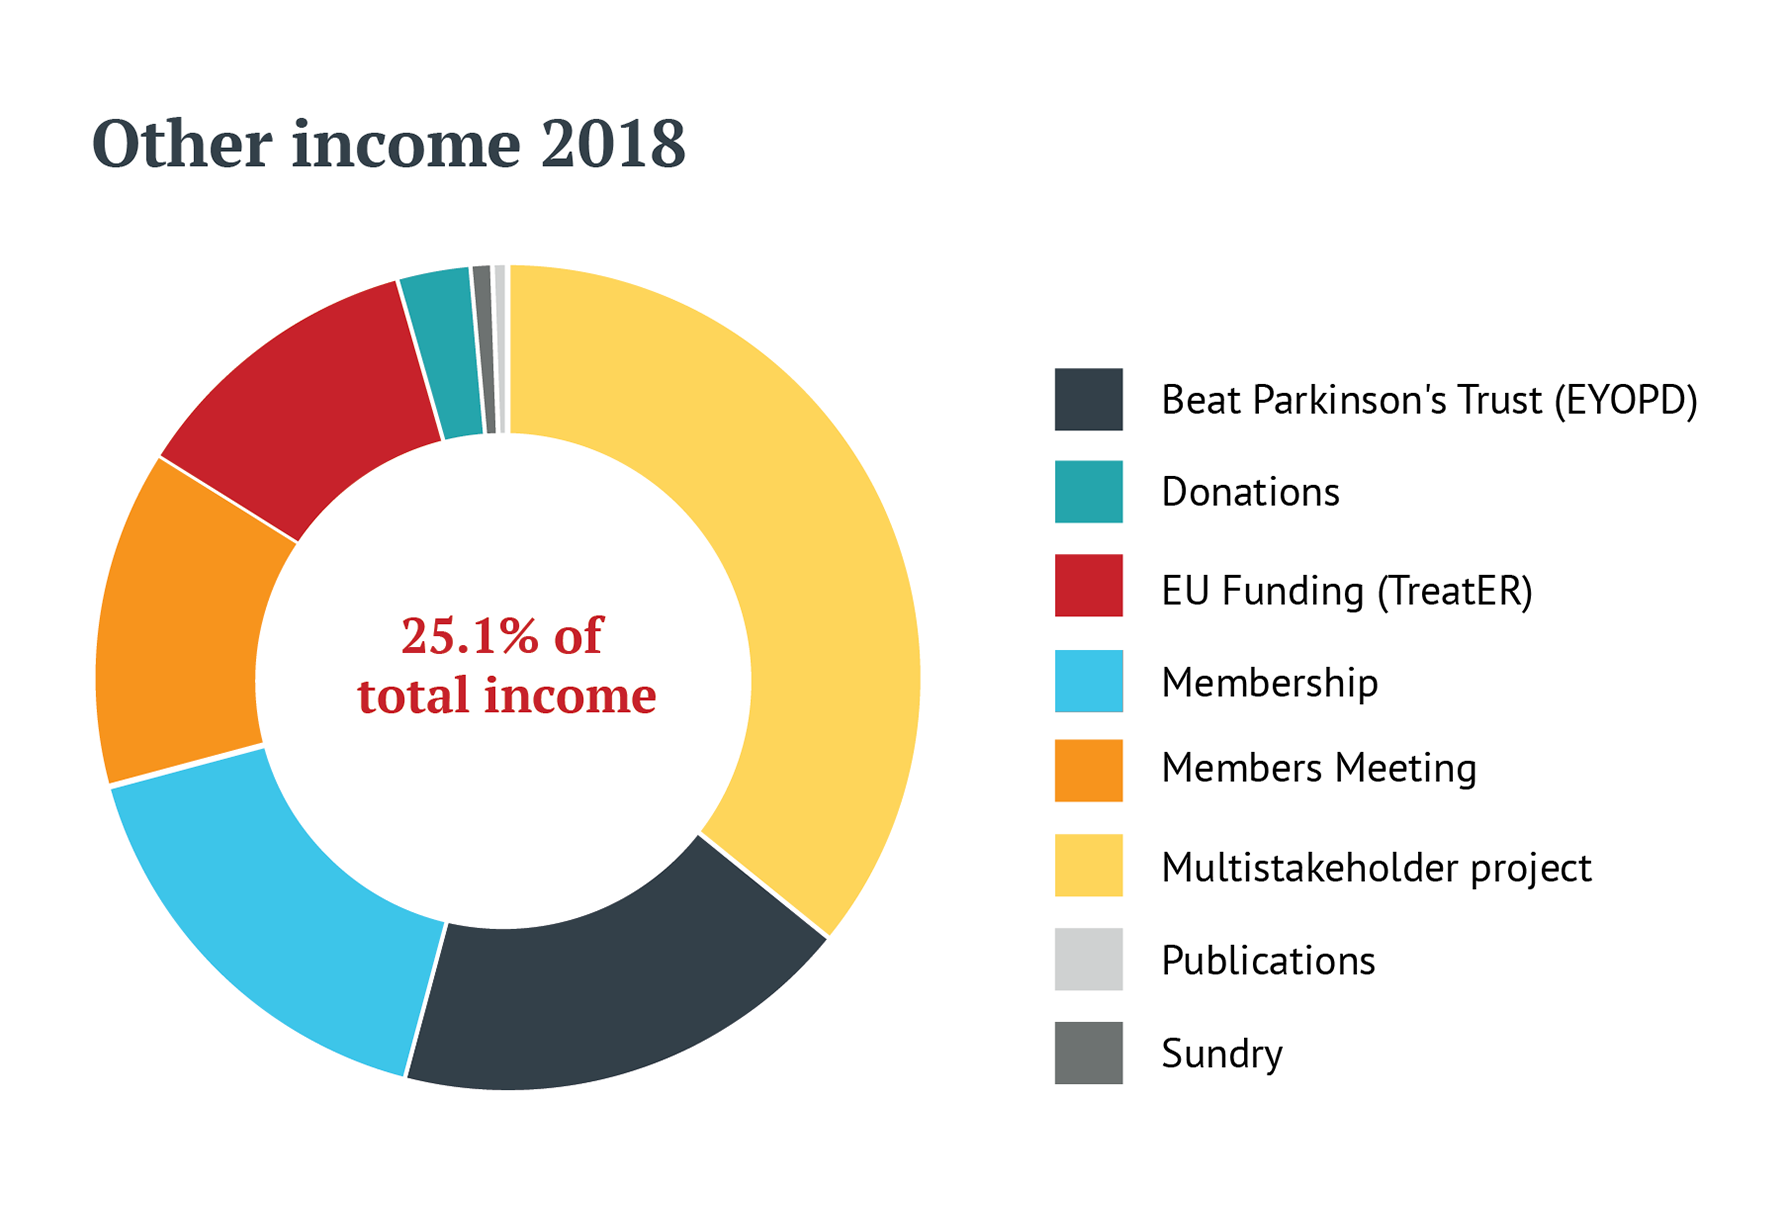 Graph displaying EPDA other income sources for 2018